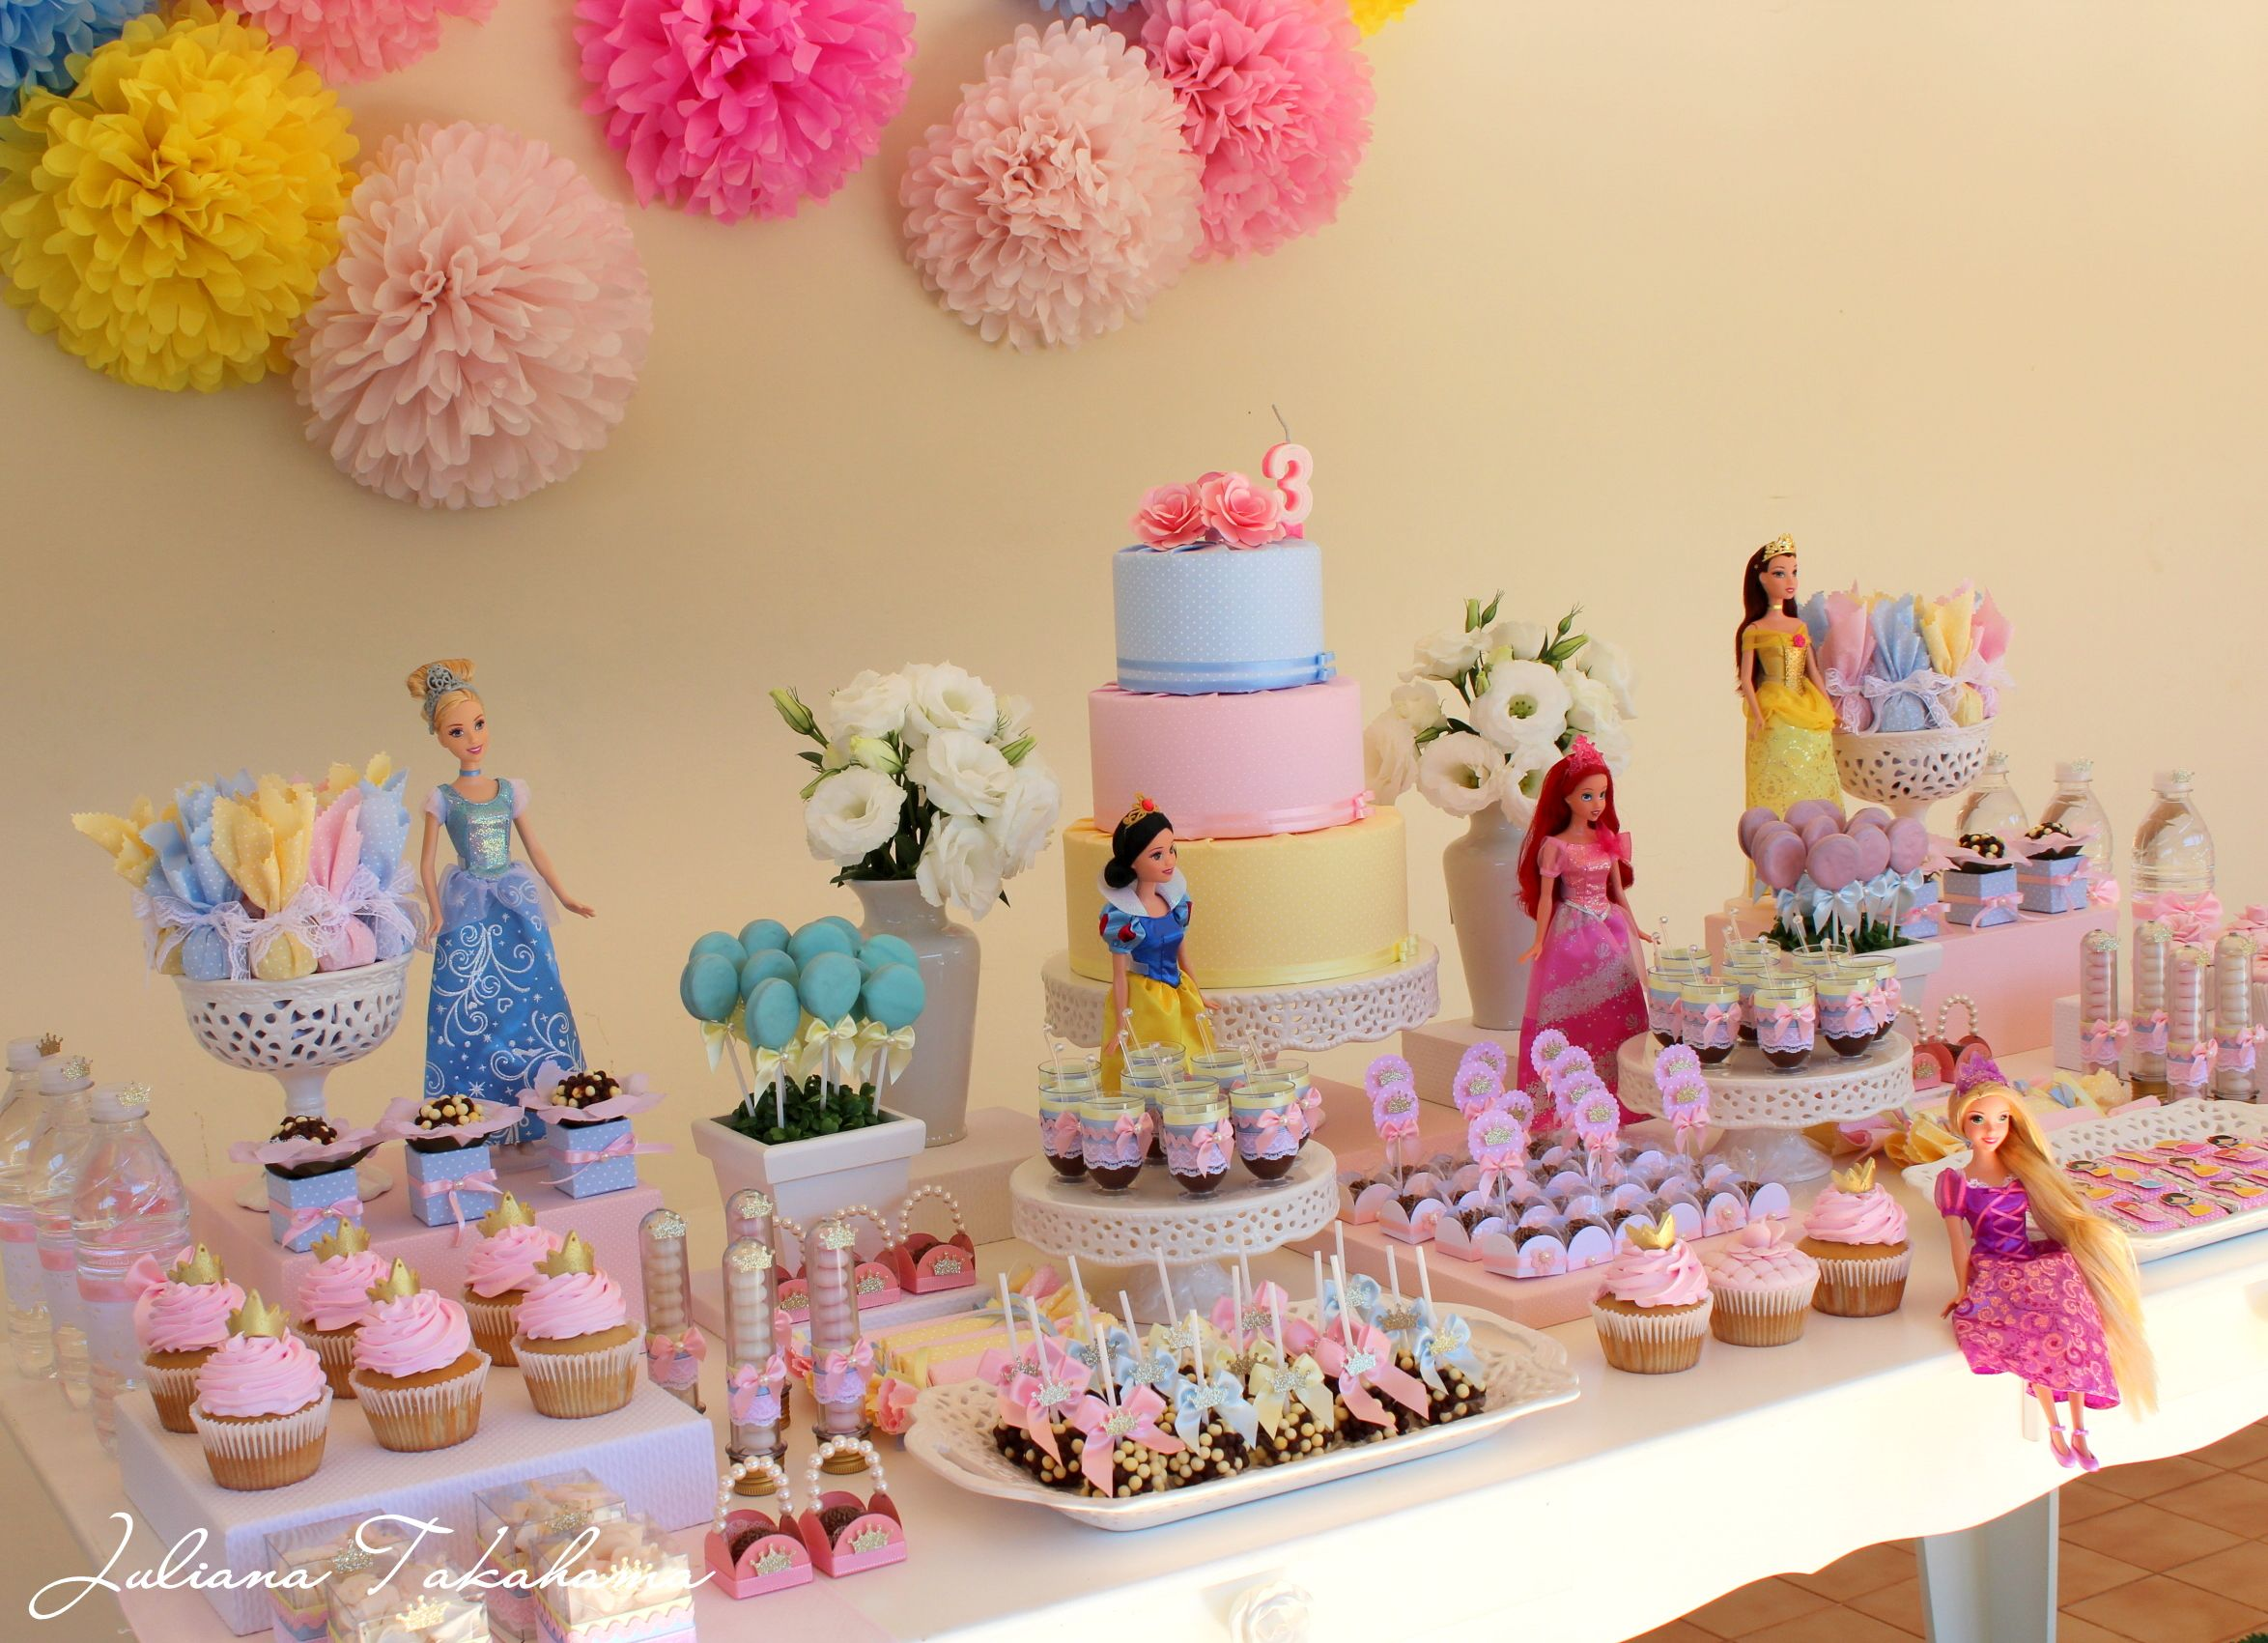 Make It A Purple Princess Party And Set Up The Cake Table With Barbies